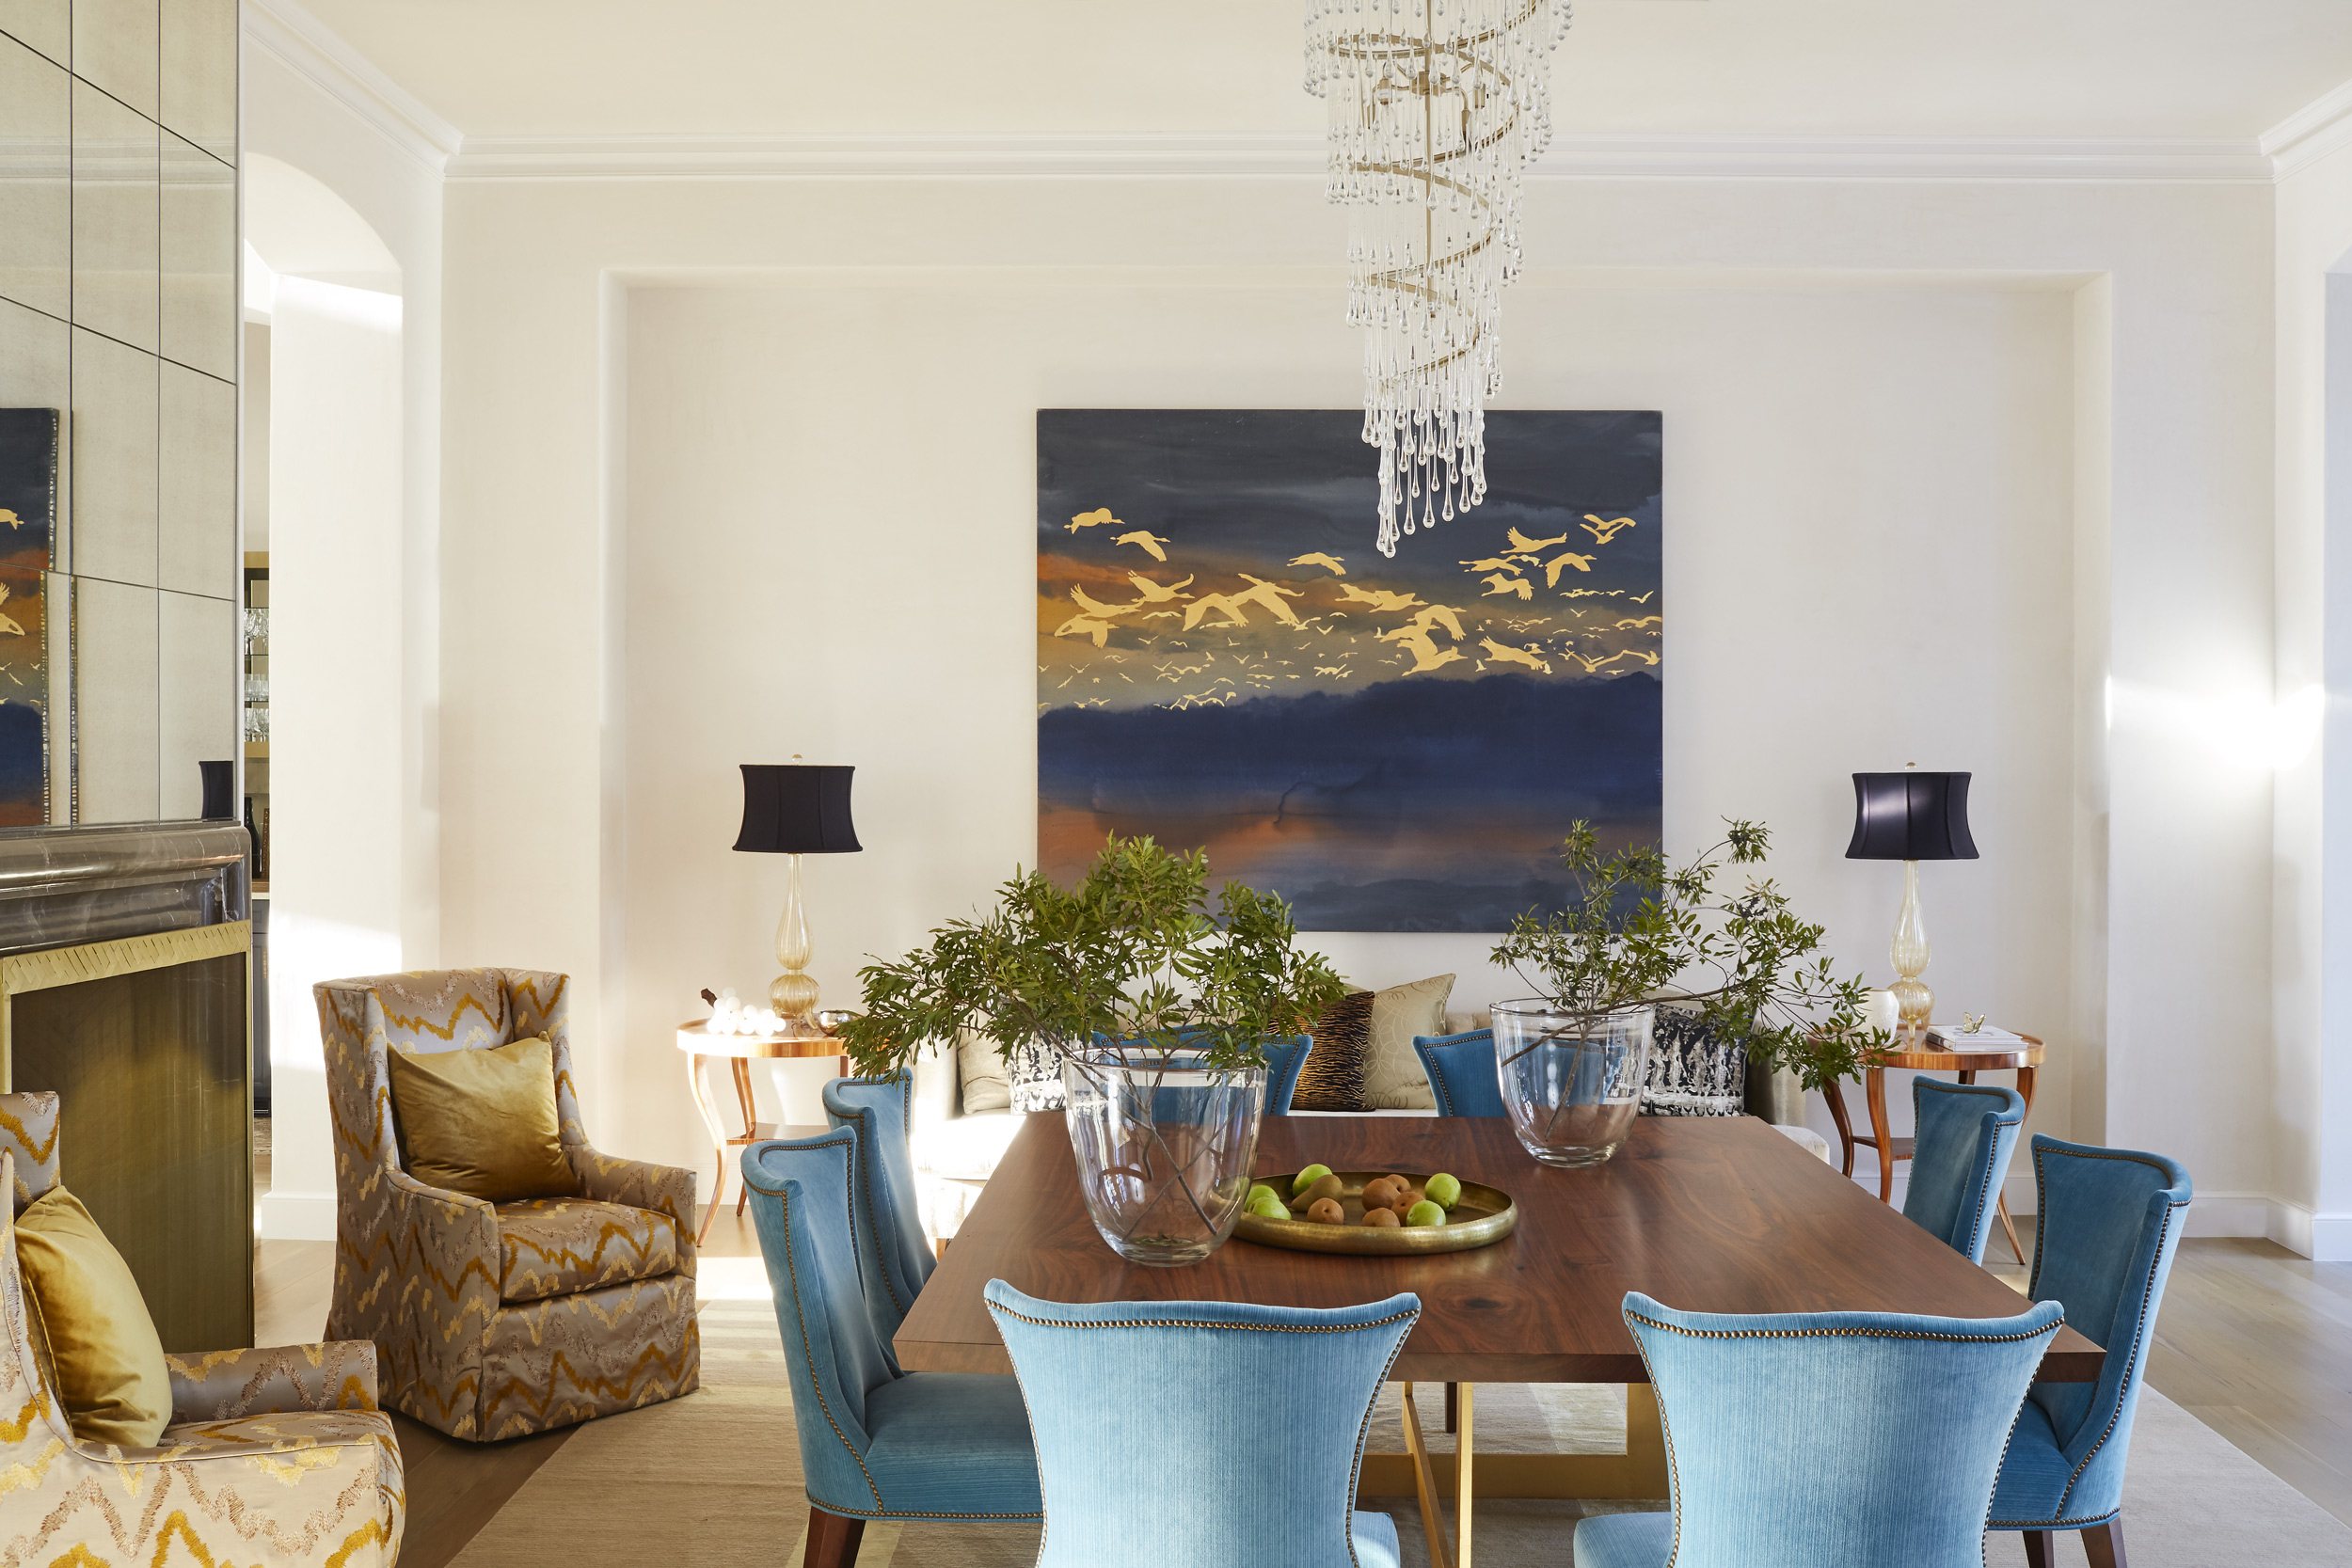 Bridget Beari interiors with Tom Swanston art, Mali Azima photography.